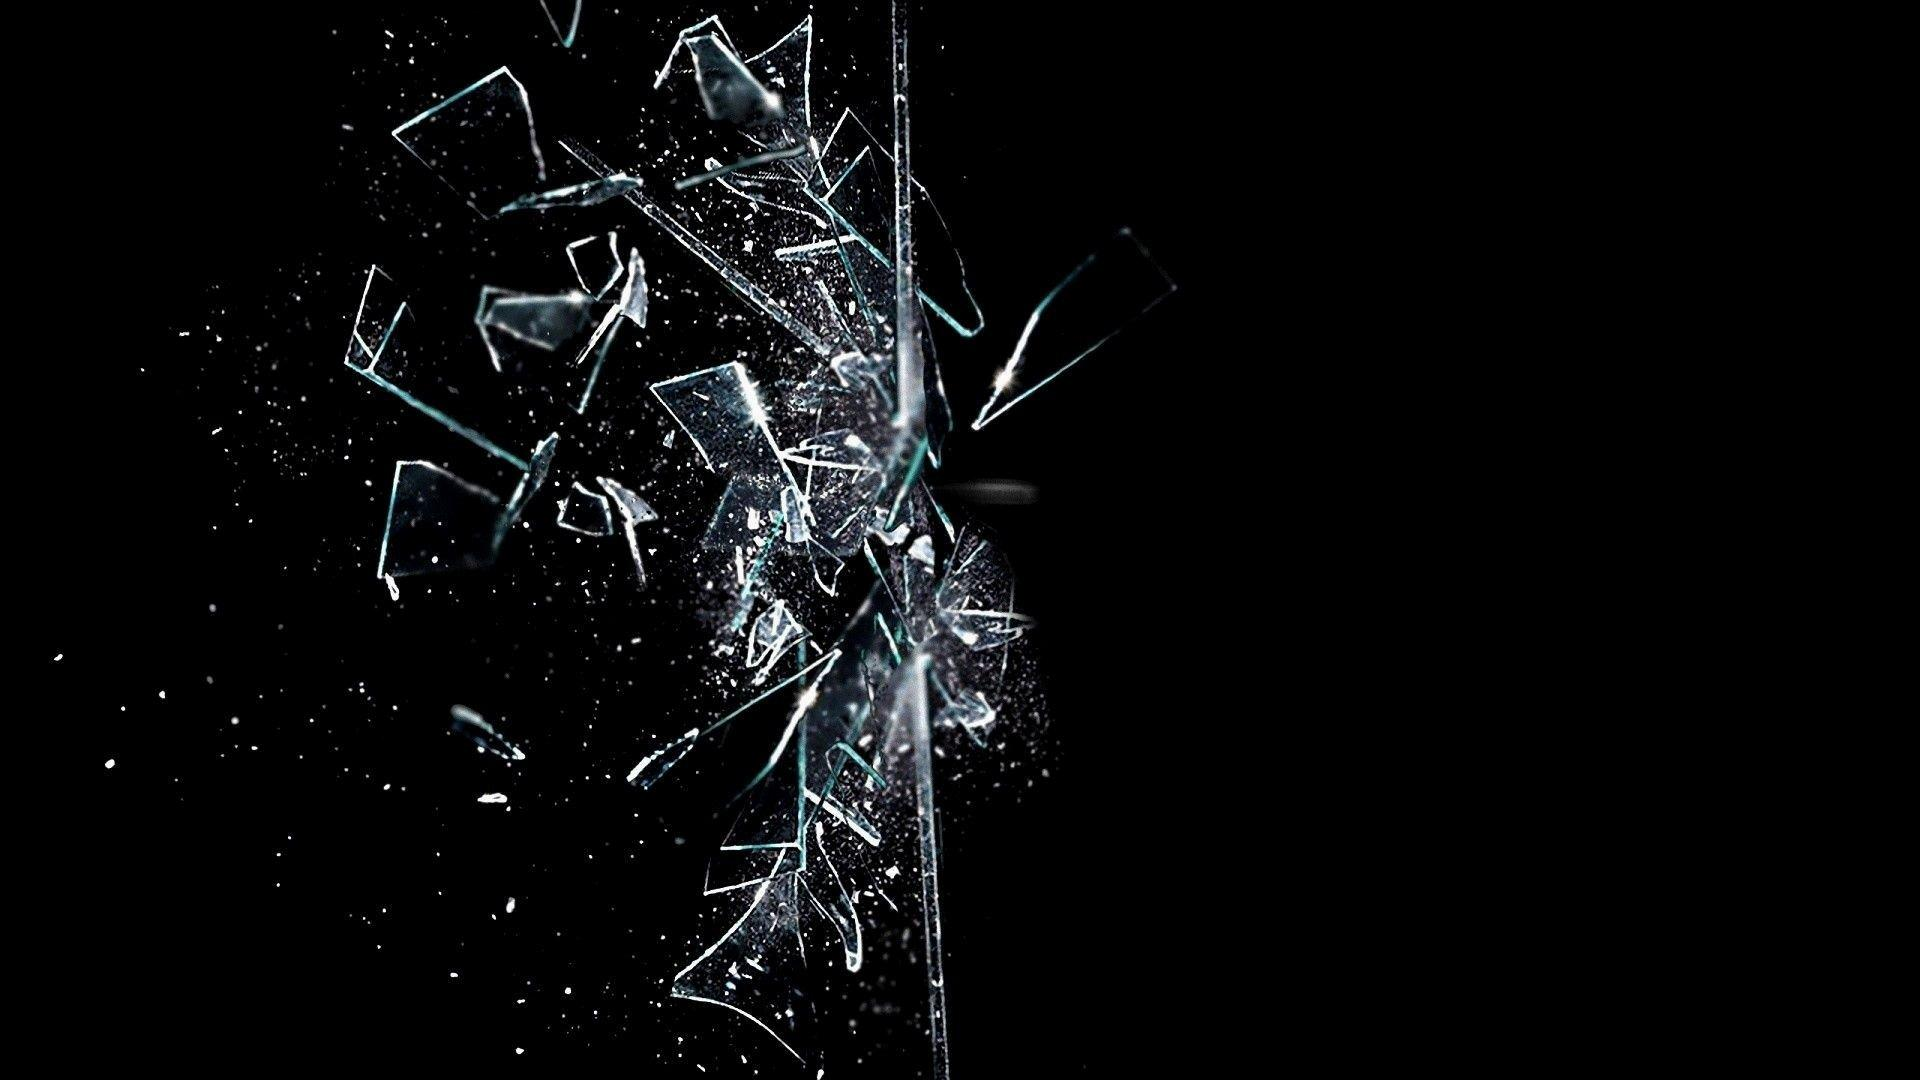 Broken Iphone Screen Wallpaper 35 Wallpapers Adorable